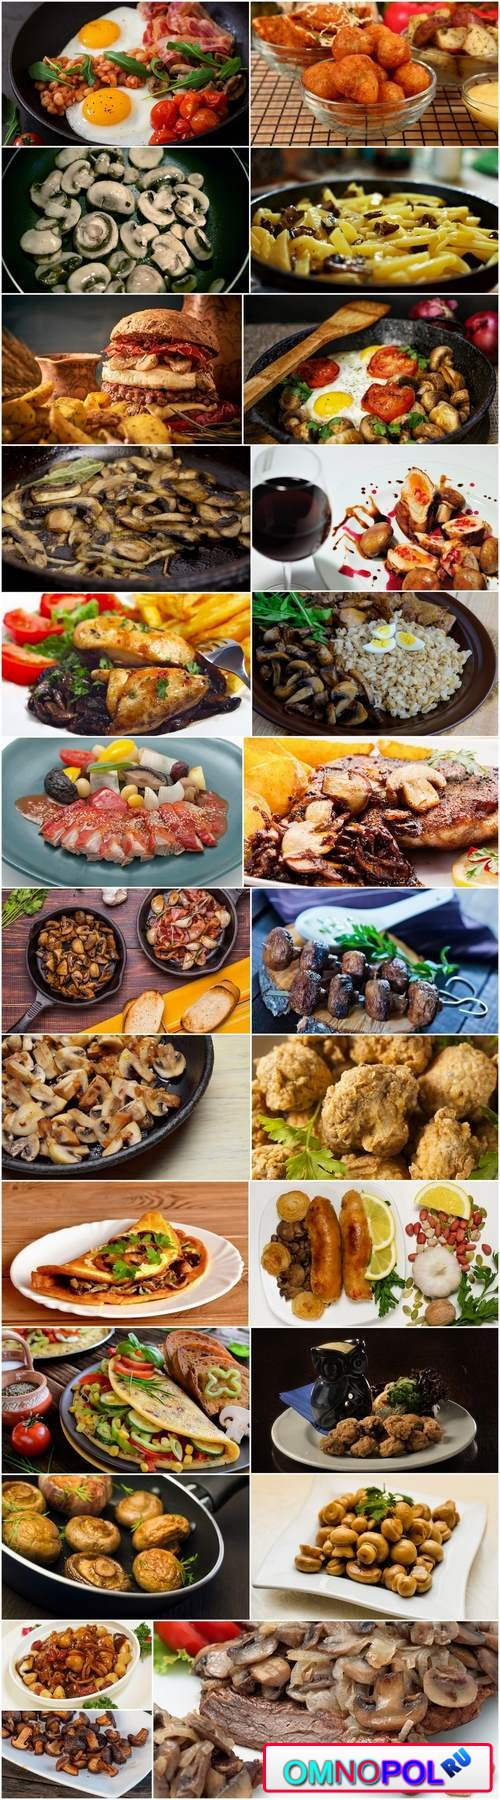 Mushrooms fried dishes with mushrooms chicken salad omelette 25 HQ Jpeg